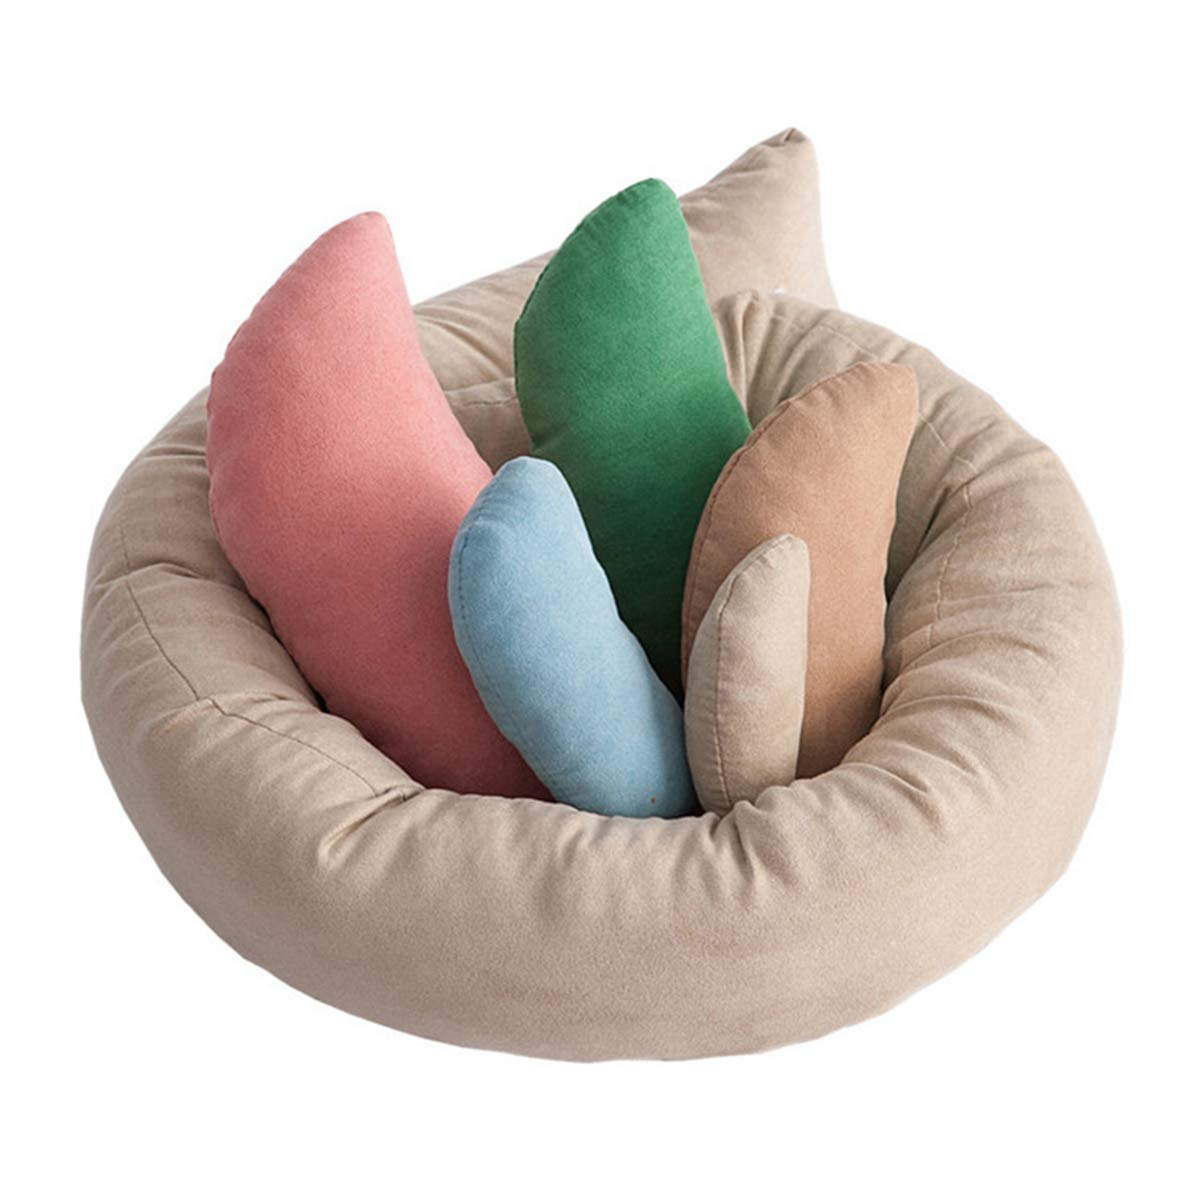 Multicolor Pack of 6 USDREAM Newborn Photography Prop Posing Beans Bag Professional Baby Photo Posing Aid Pillow Photograph Shoot Set for 0-6 Months Baby